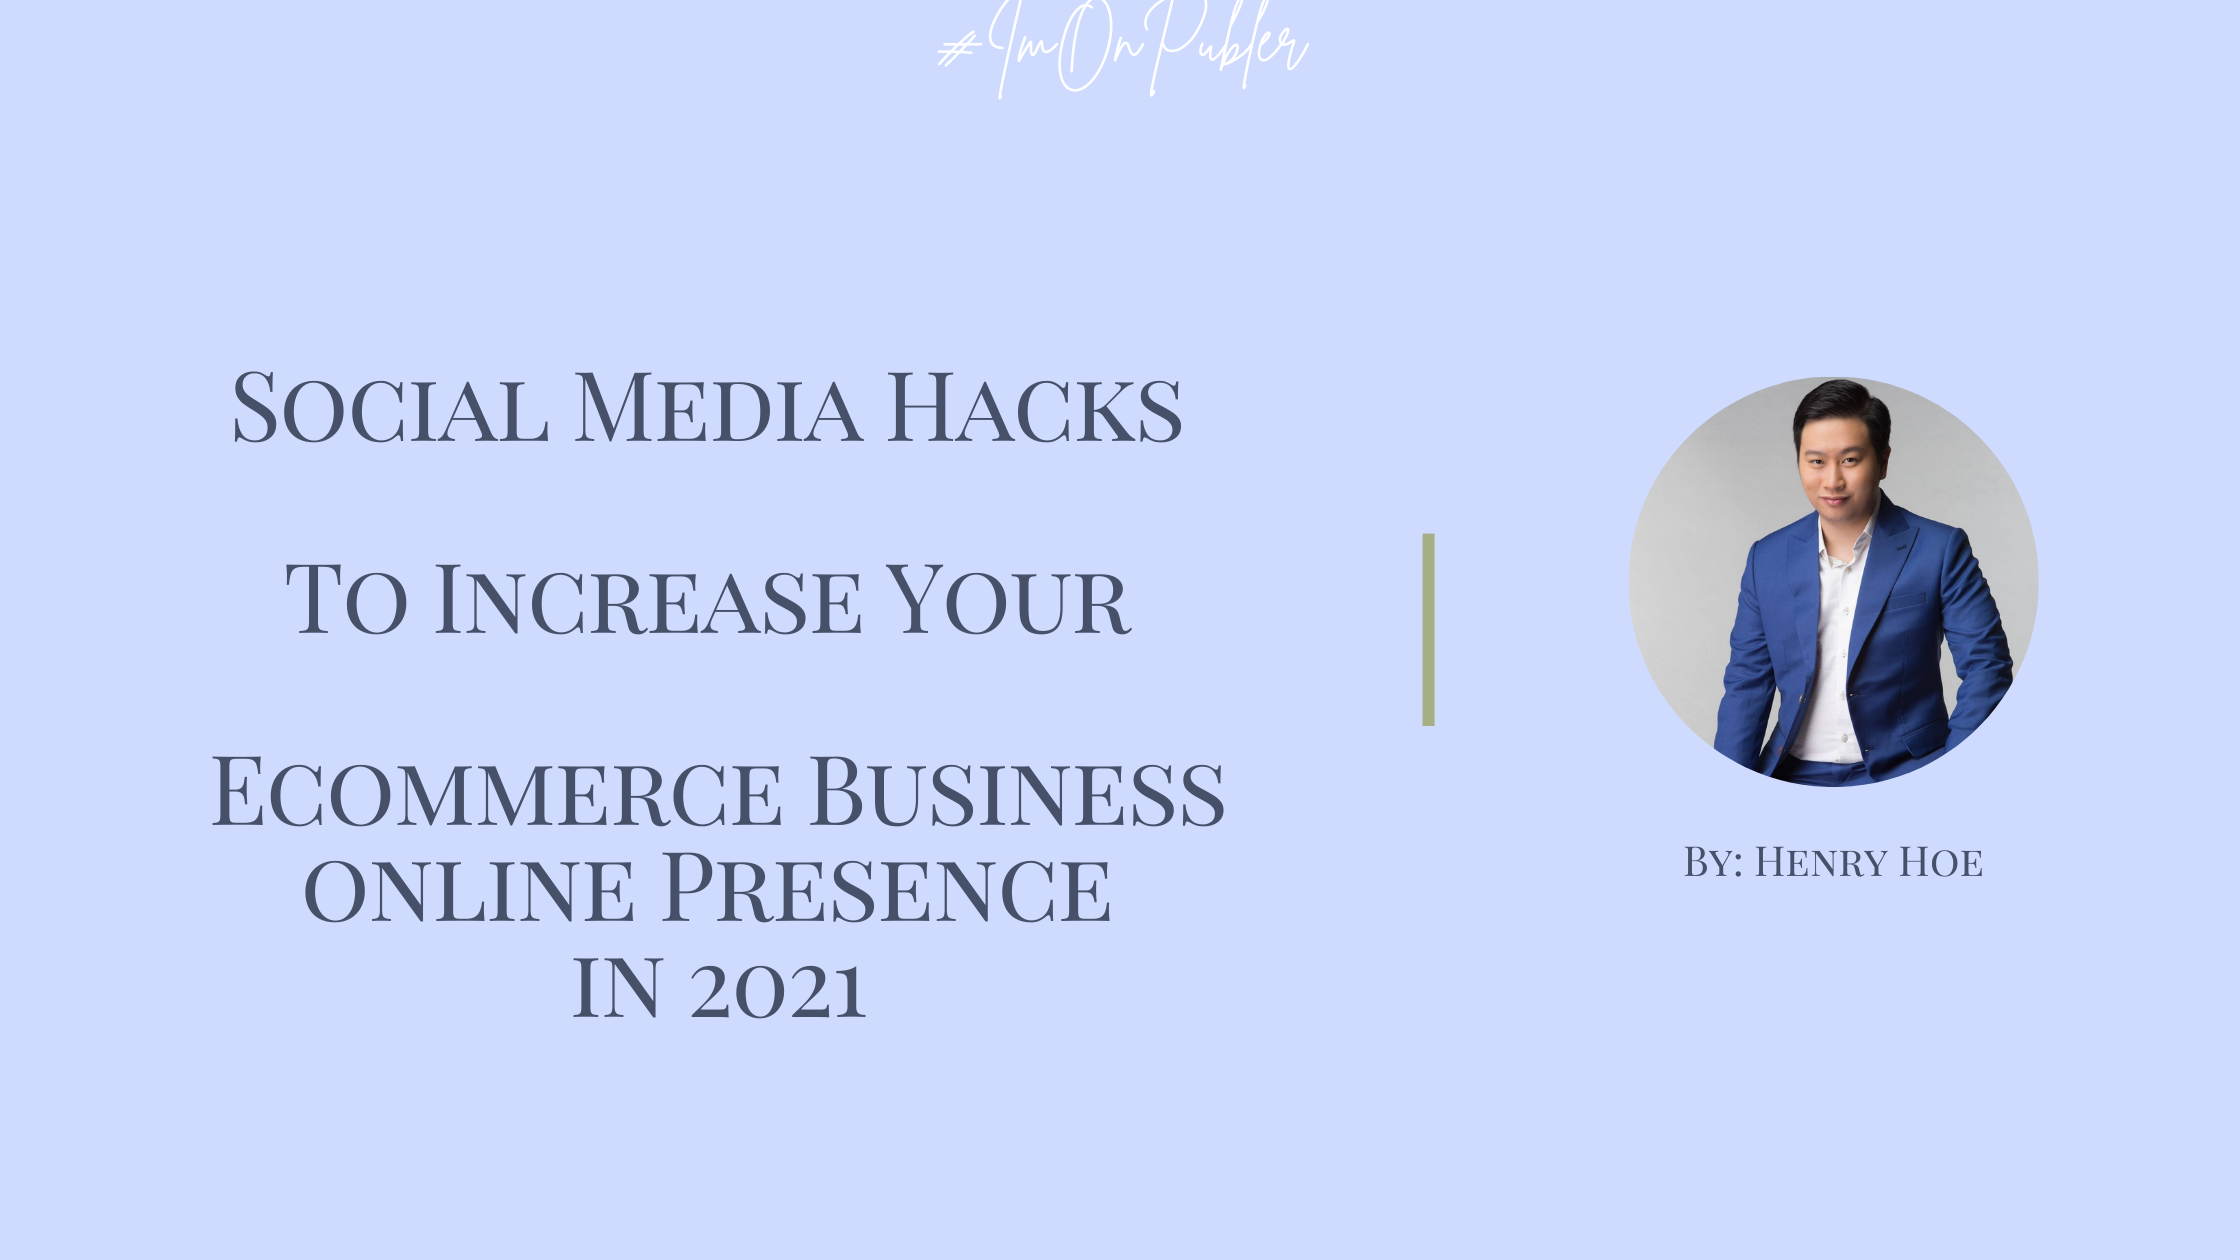 Social Media Hacks To Increase Your Ecommerce Business Presence Online in 2021 by Henry Hoe